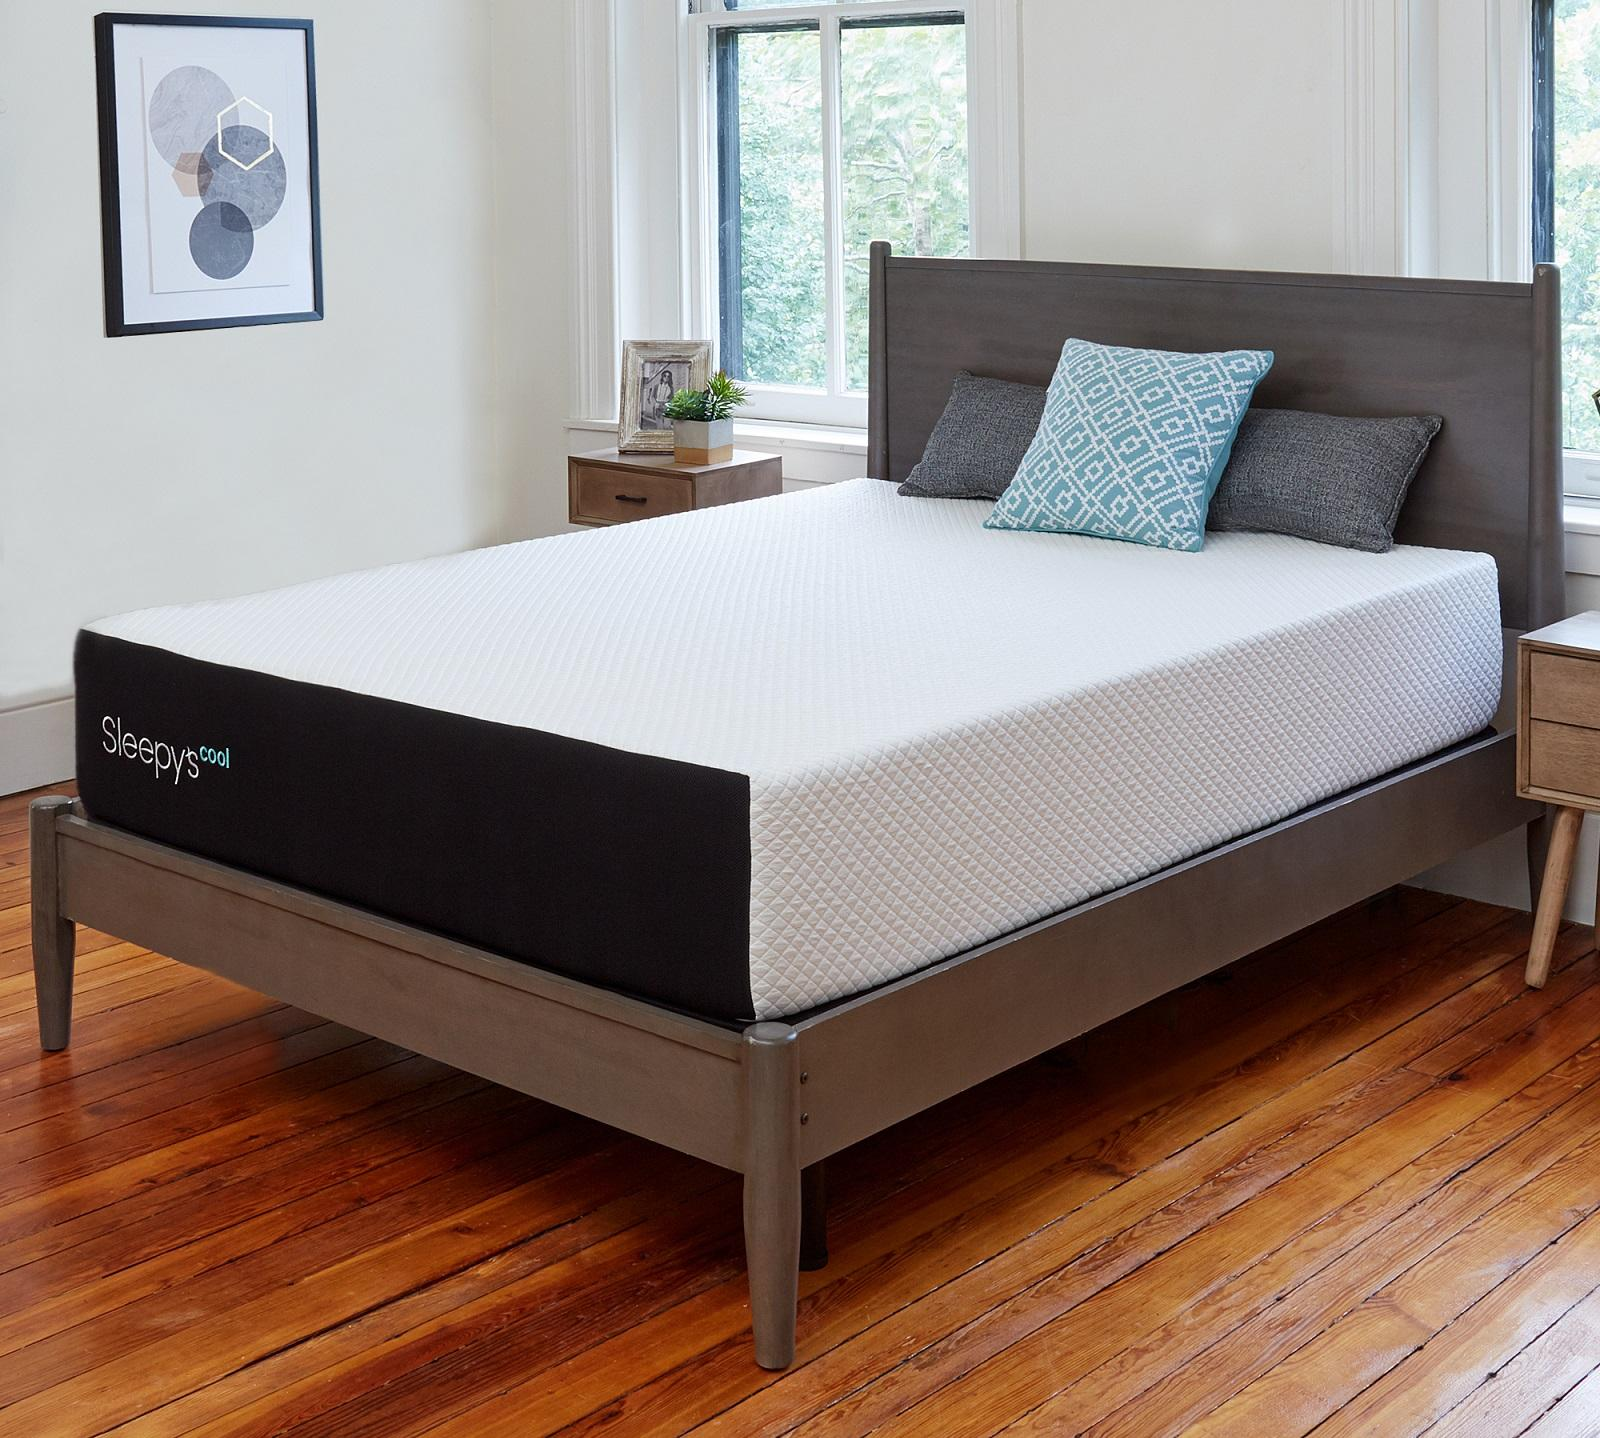 store aug million firm s to retail time new about sleepy for mattress buy in sleepys jersey